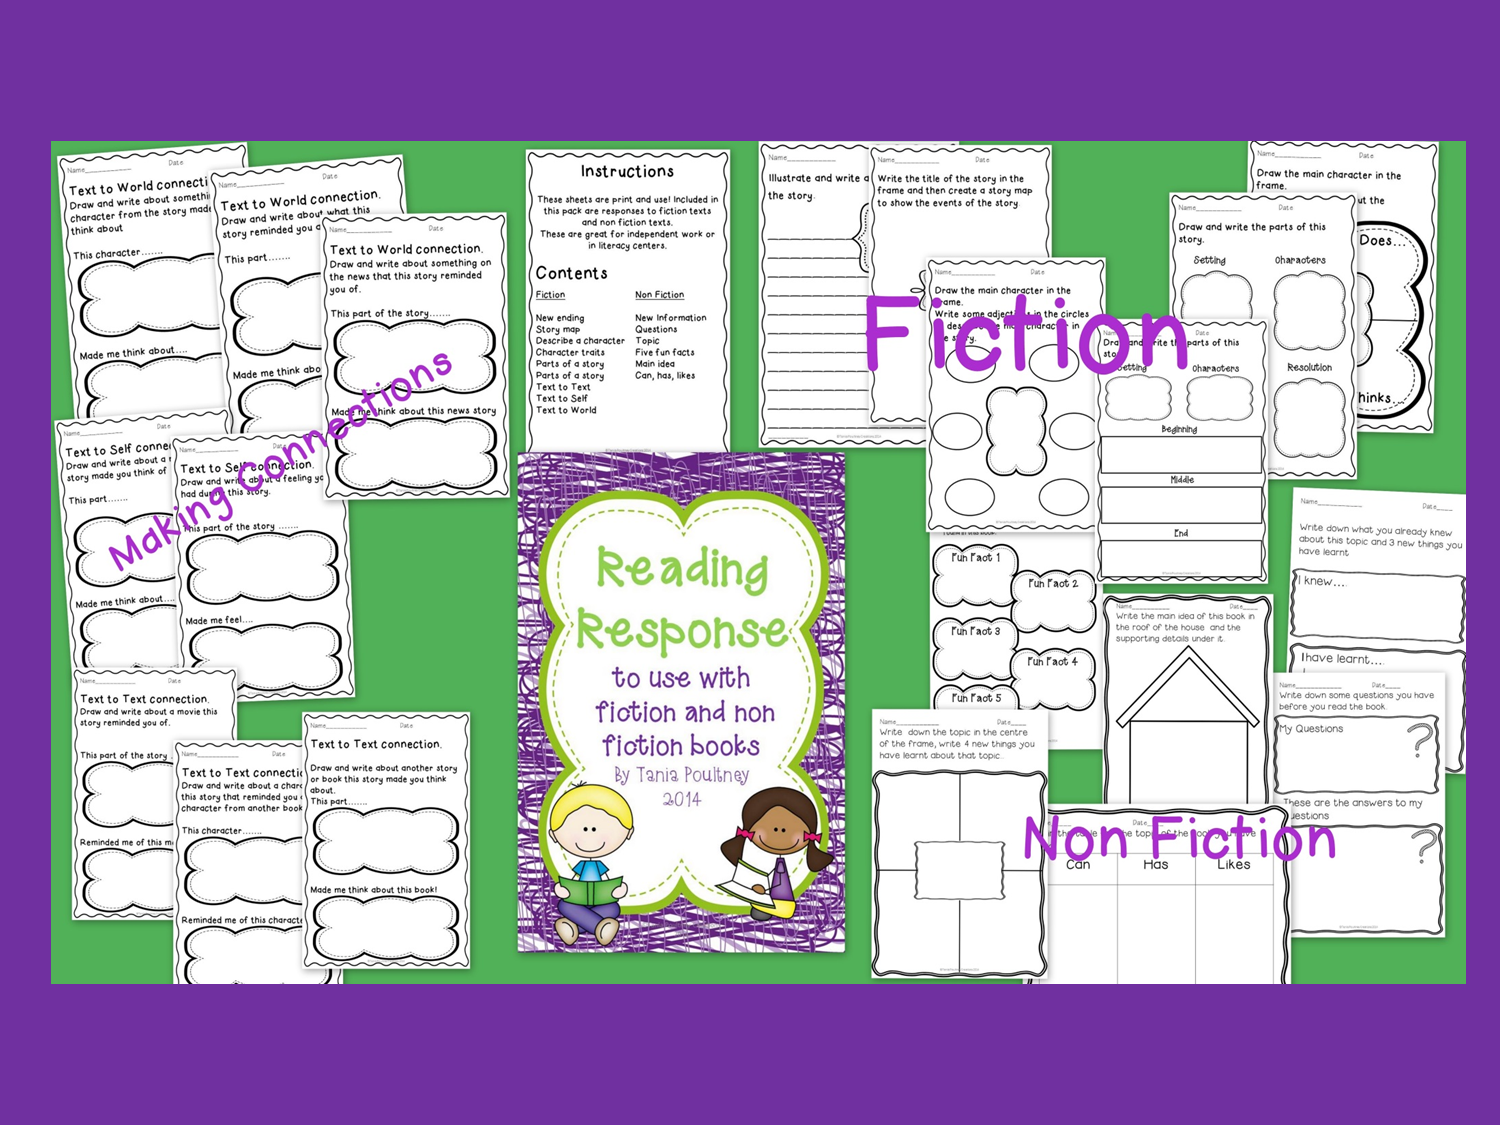 http://www.teacherspayteachers.com/Product/Reading-Response-for-fiction-and-non-fiction-books-1077371